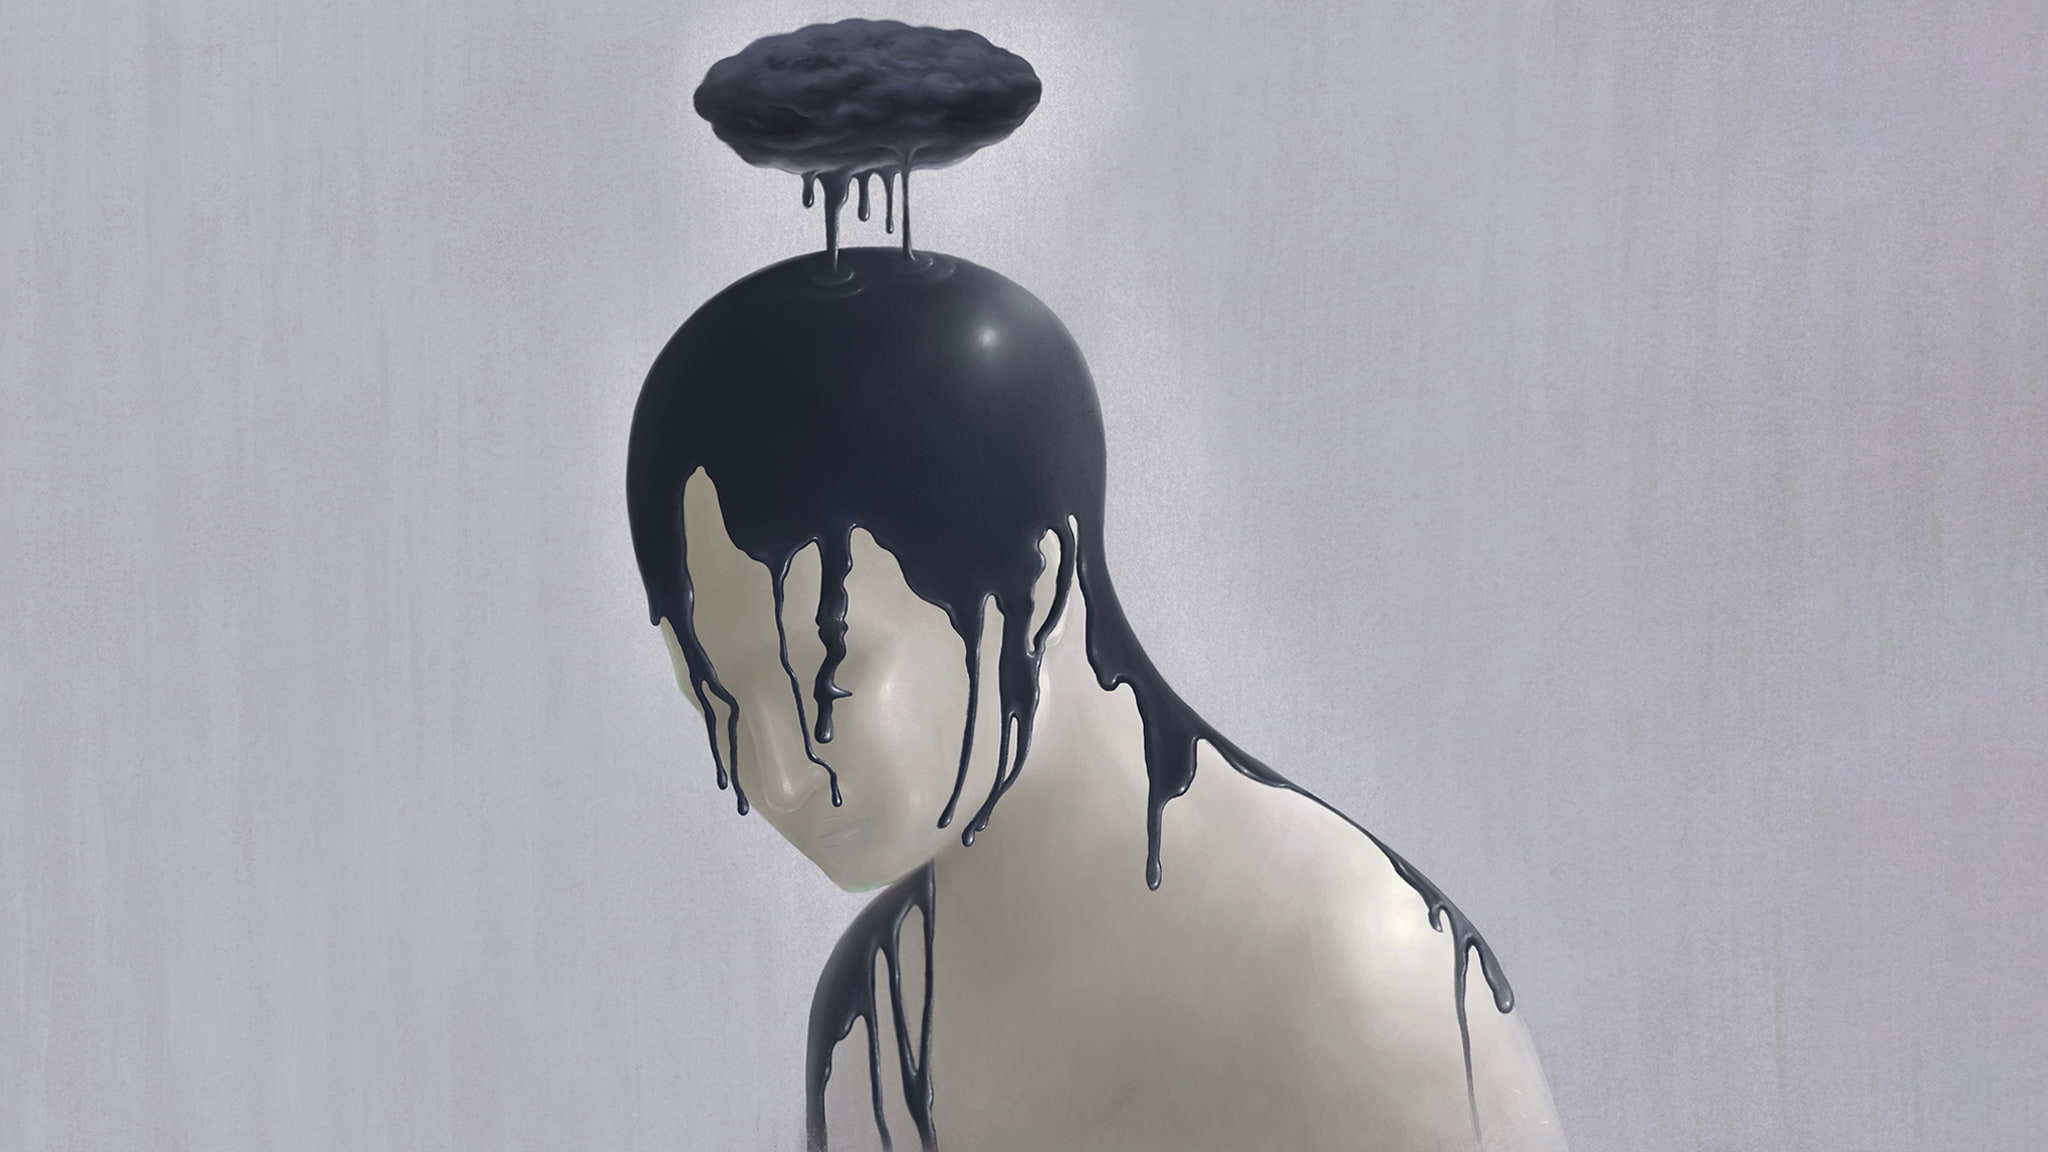 Surreal Illustration Of A Person Made Of Stone With A Black Dripping Cloud Above Their Head To Illustrate Chronic Loneliness